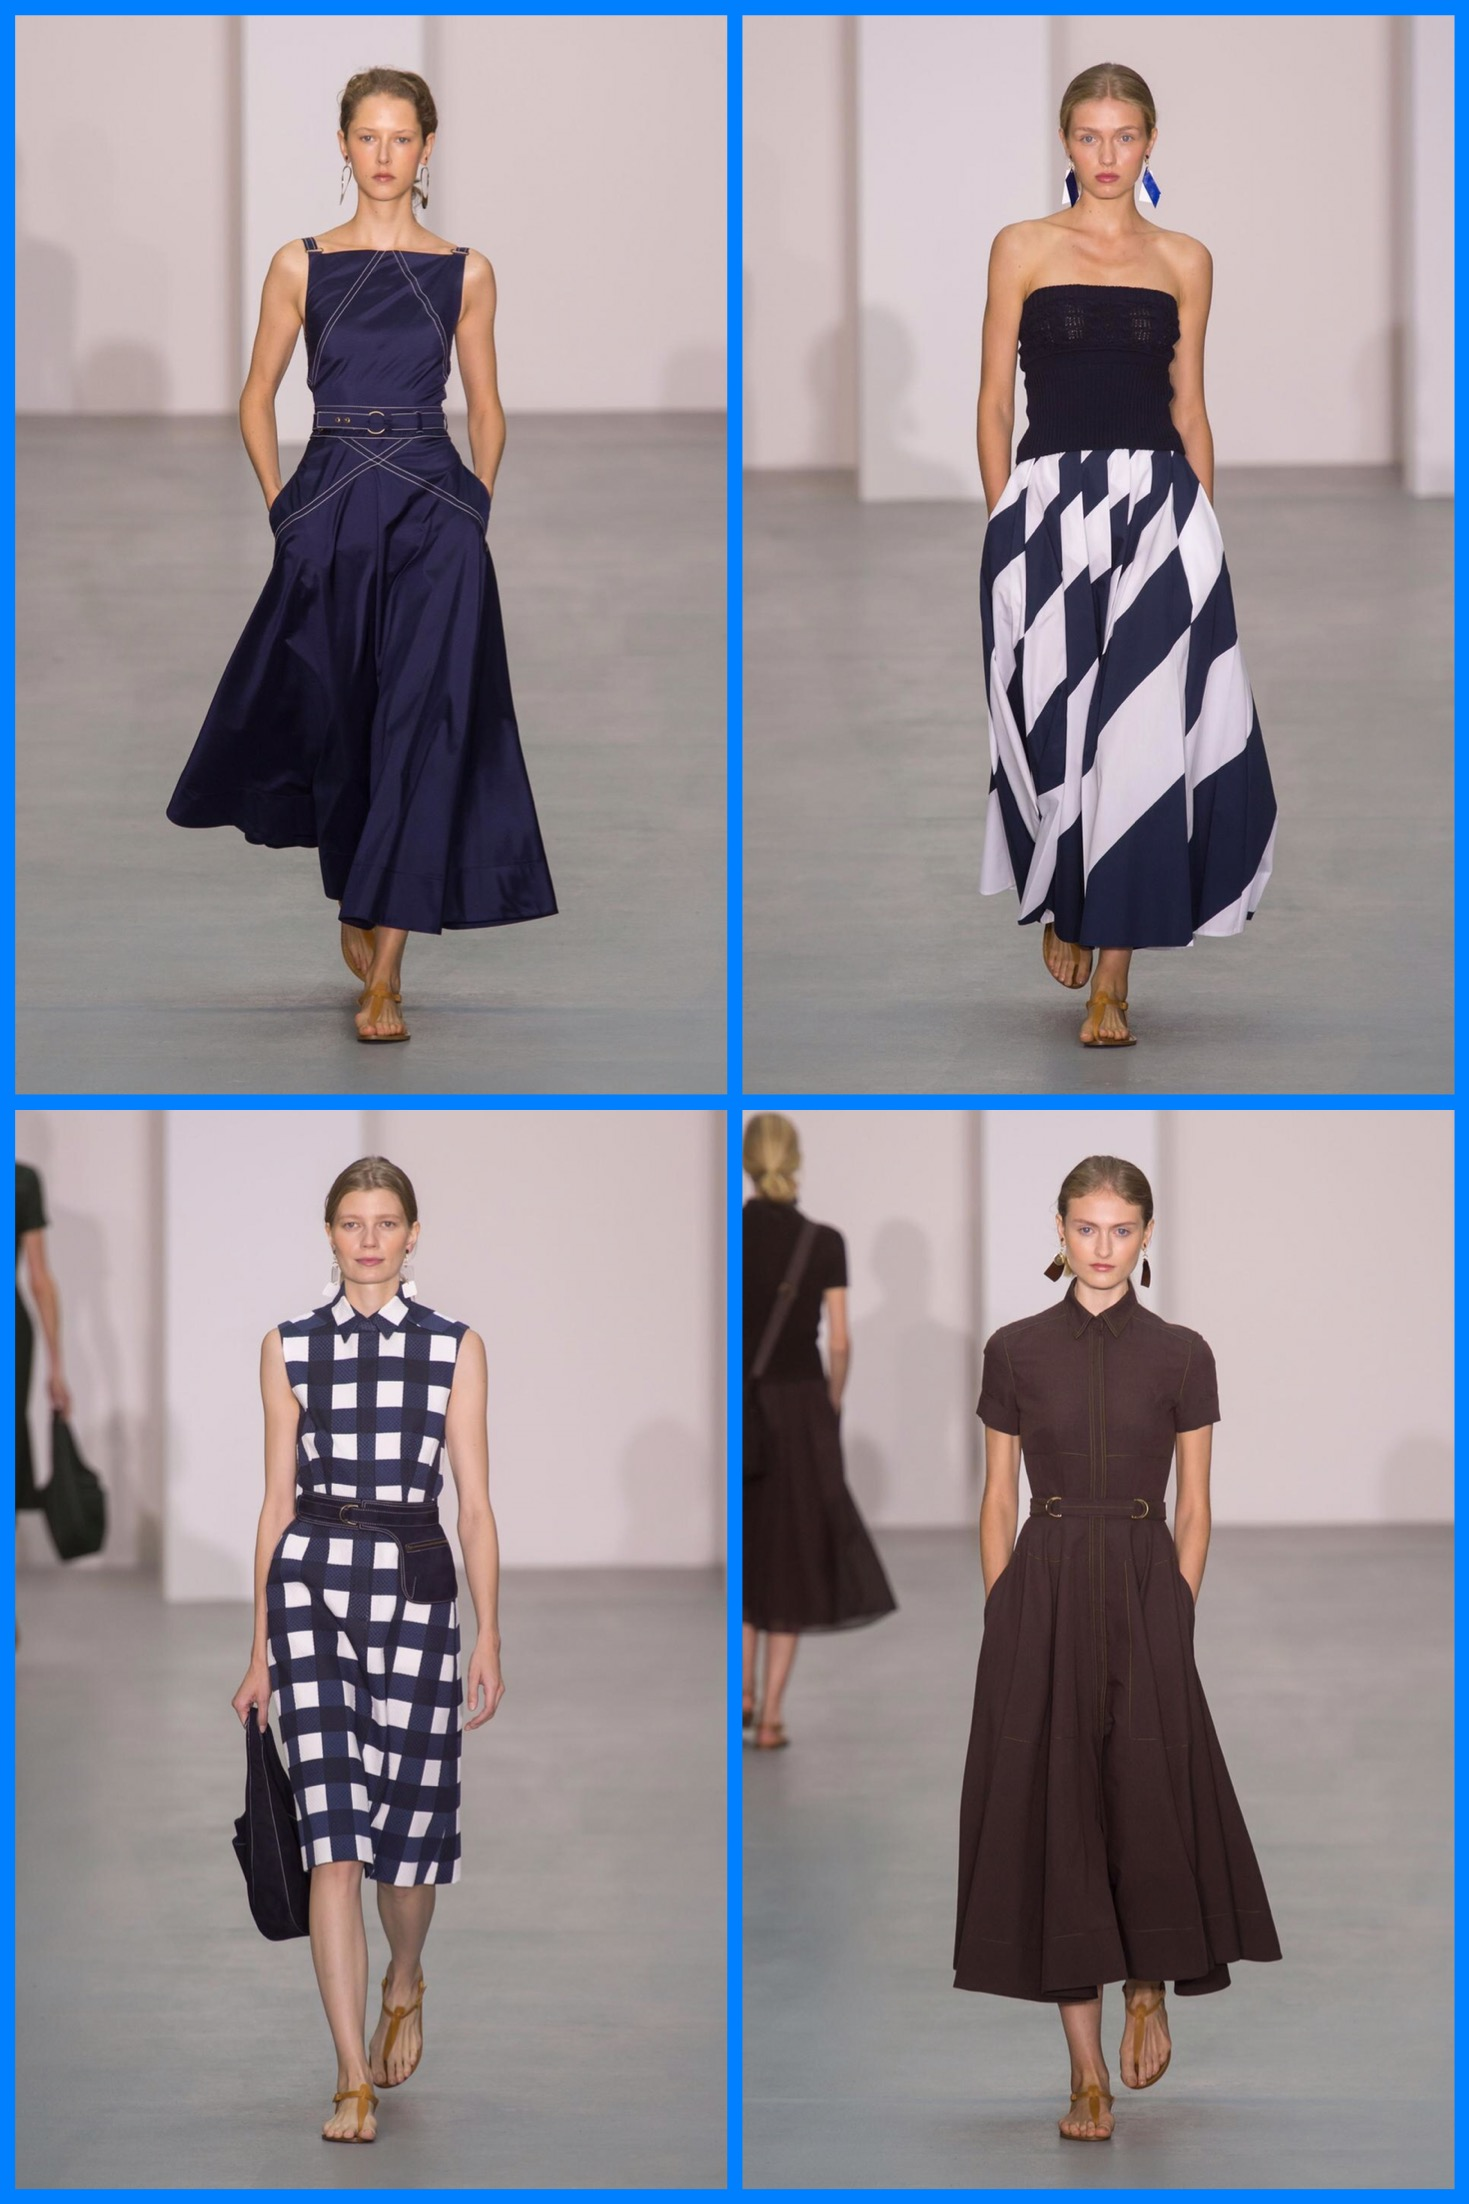 london-fashion-week-pret-a-porter-spring-summer-2017-style-jasper-conran